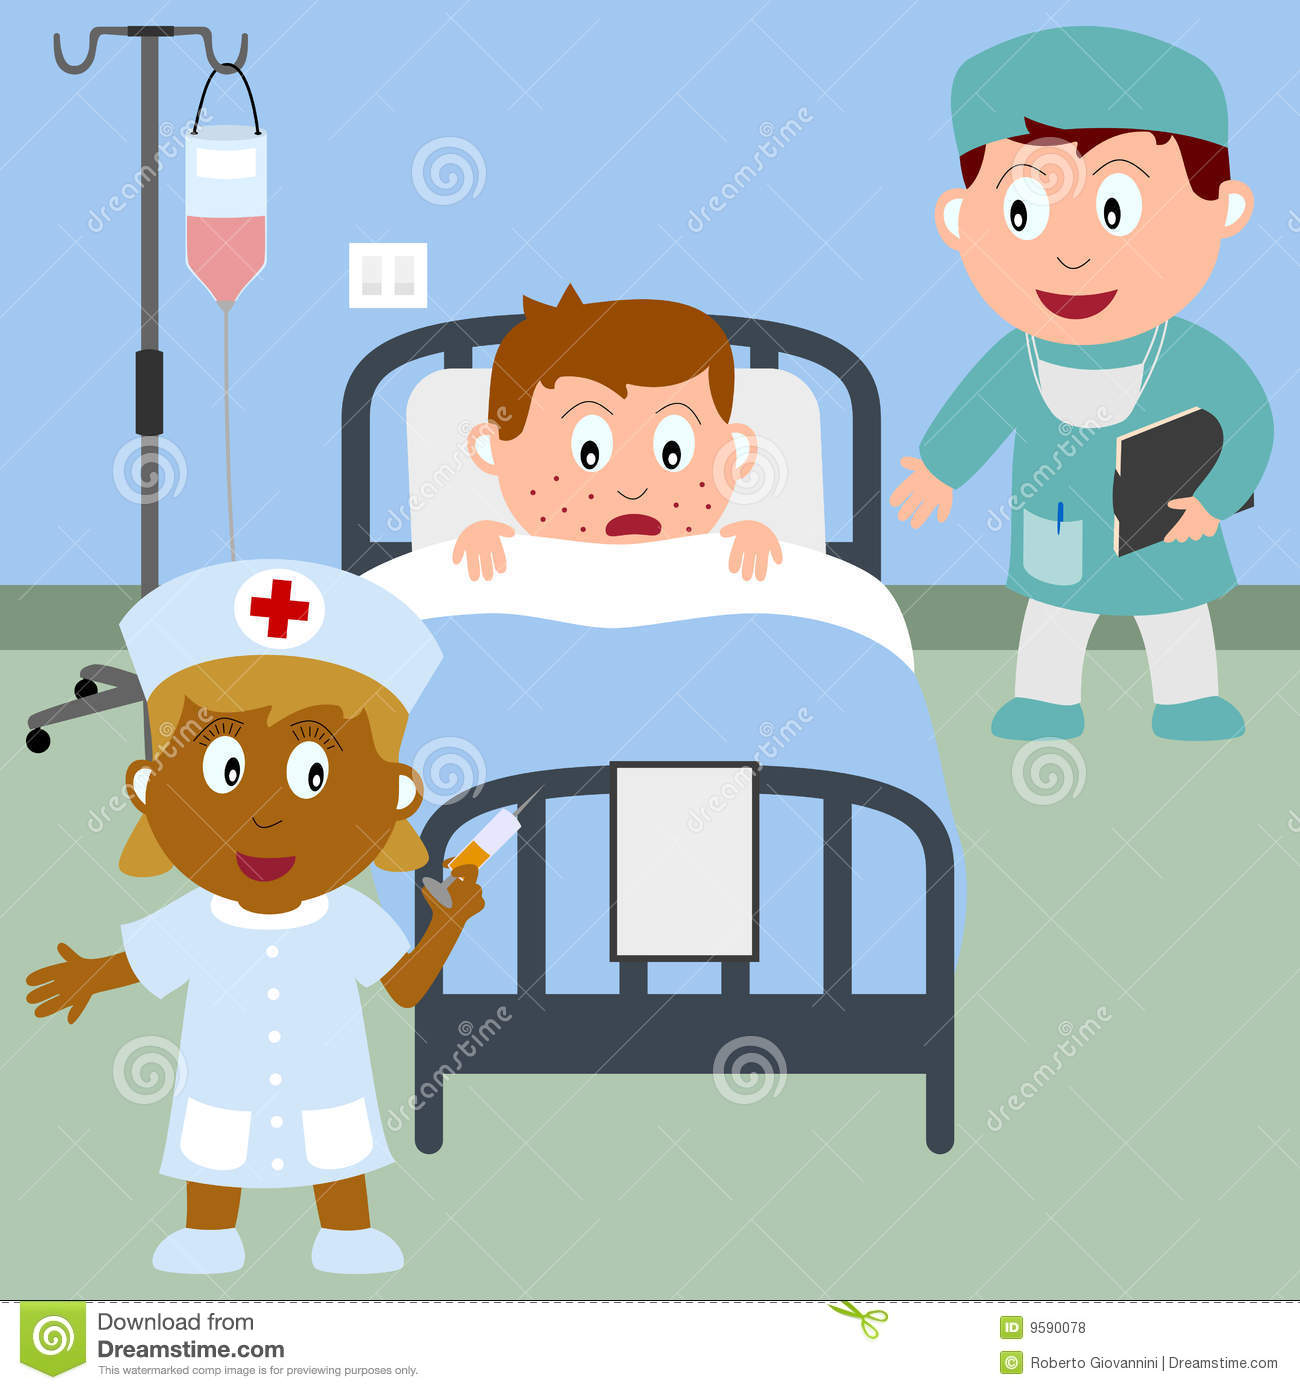 Sick Kids Hospital Clipart \x3cb\x3ehospital\x3c/b\x3e stock ...